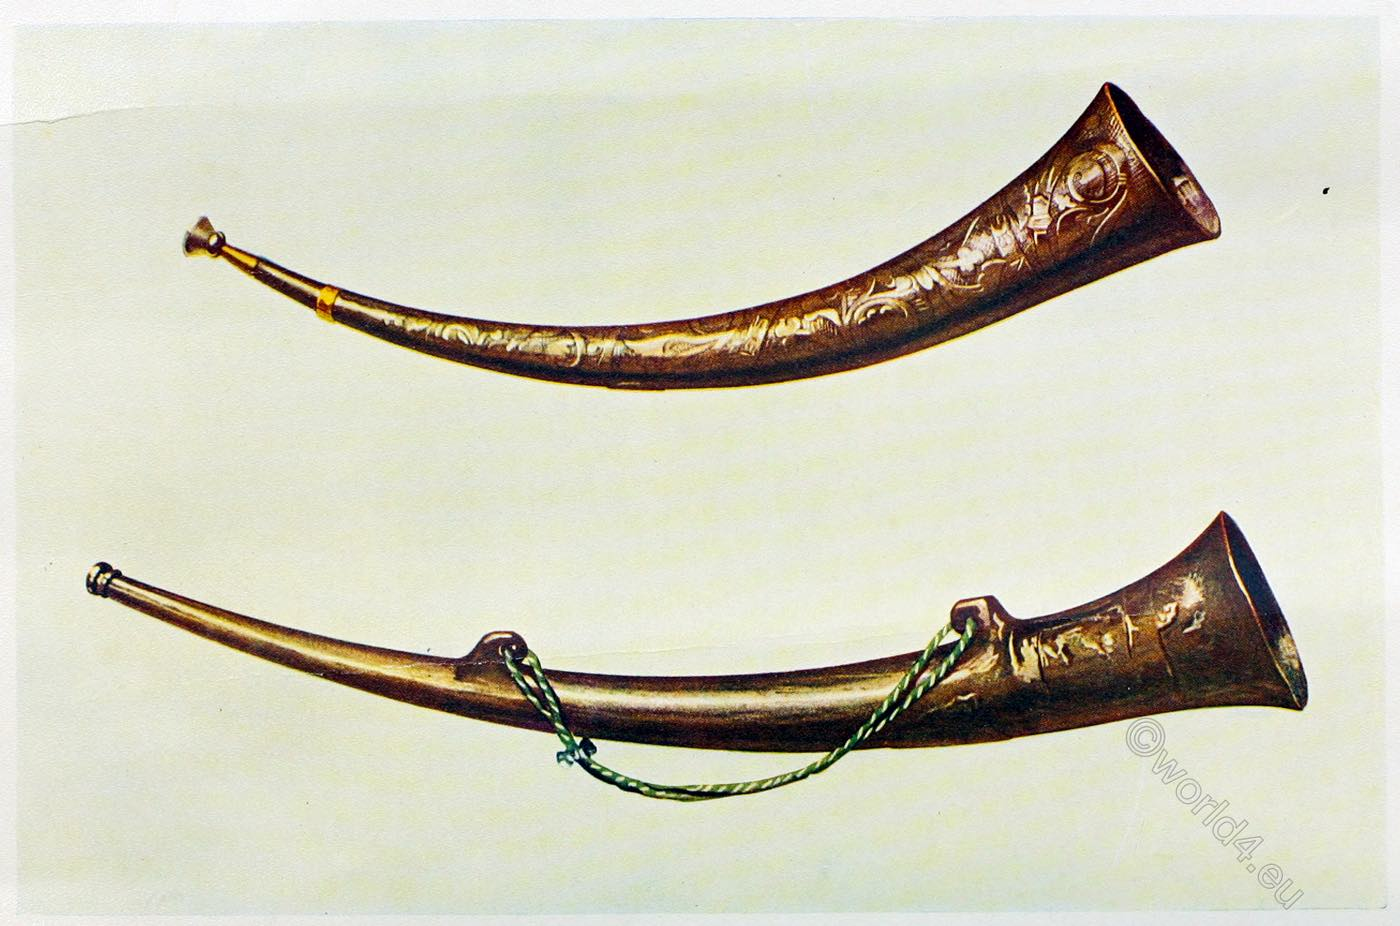 Burgamote, Horns, Canterbury, England, Dover, musical, instruments, middle ages,